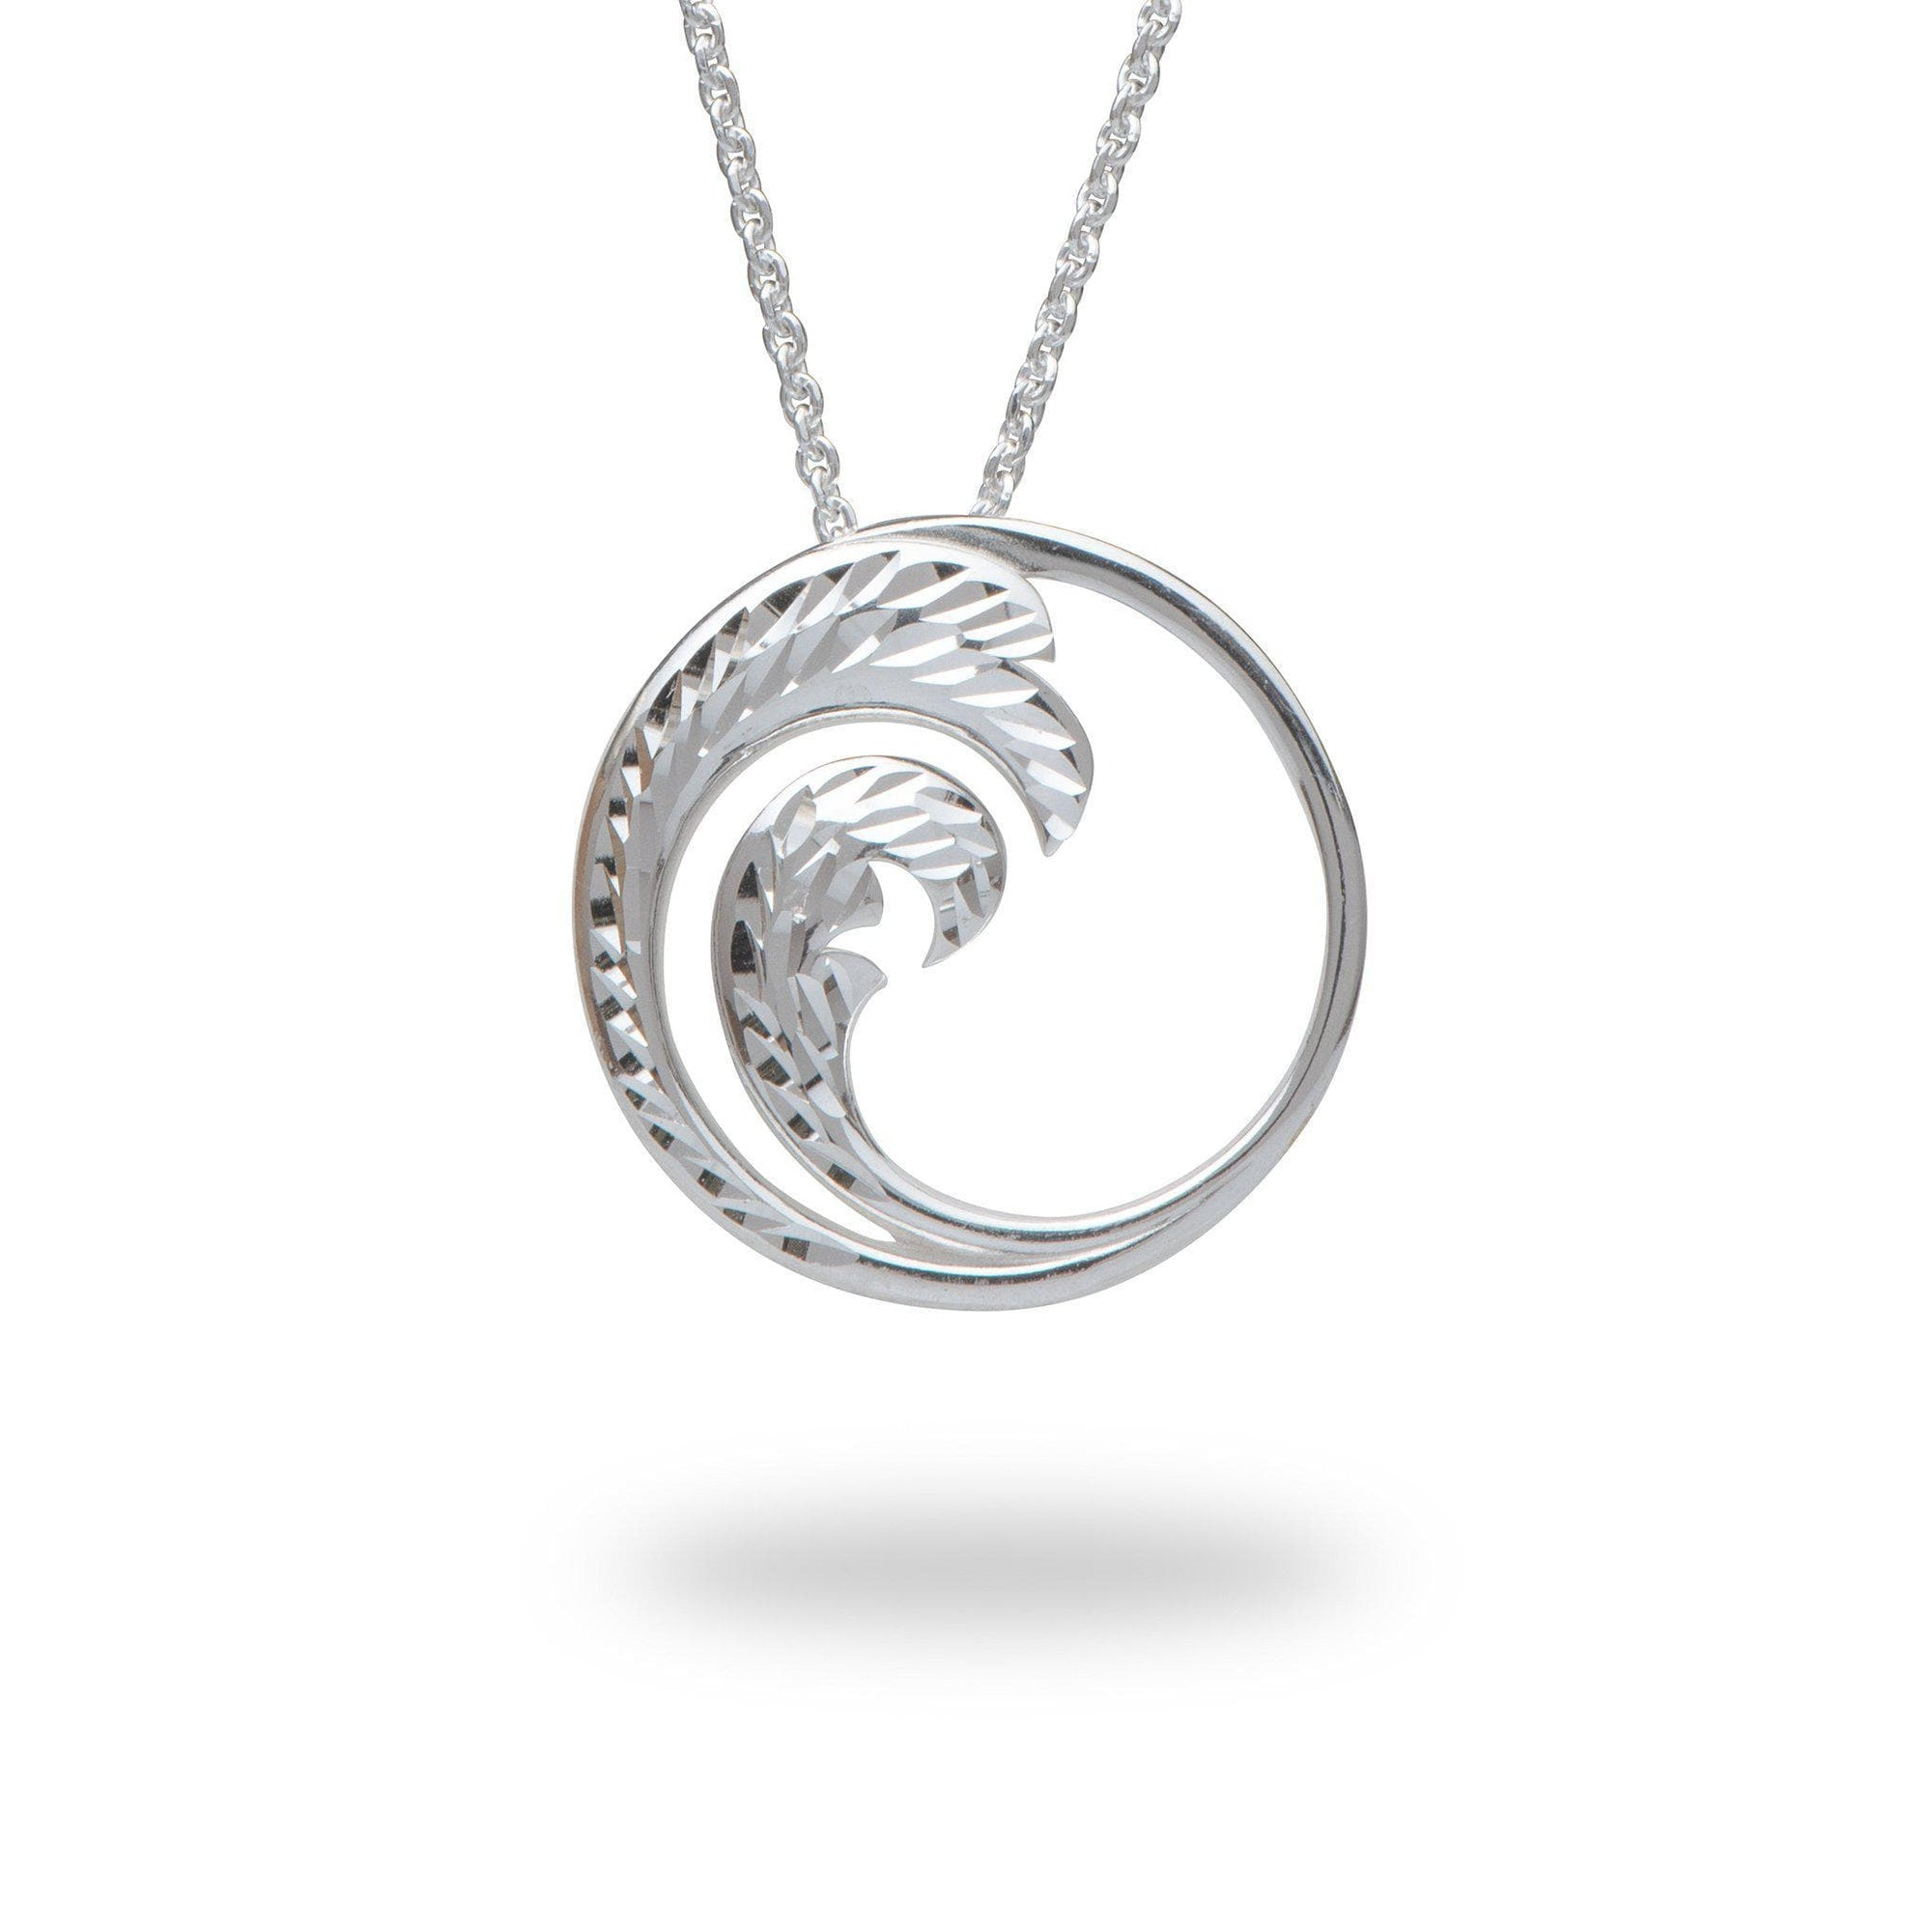 Nalu Pendant in Sterling Silver - 24mm-[SKU]